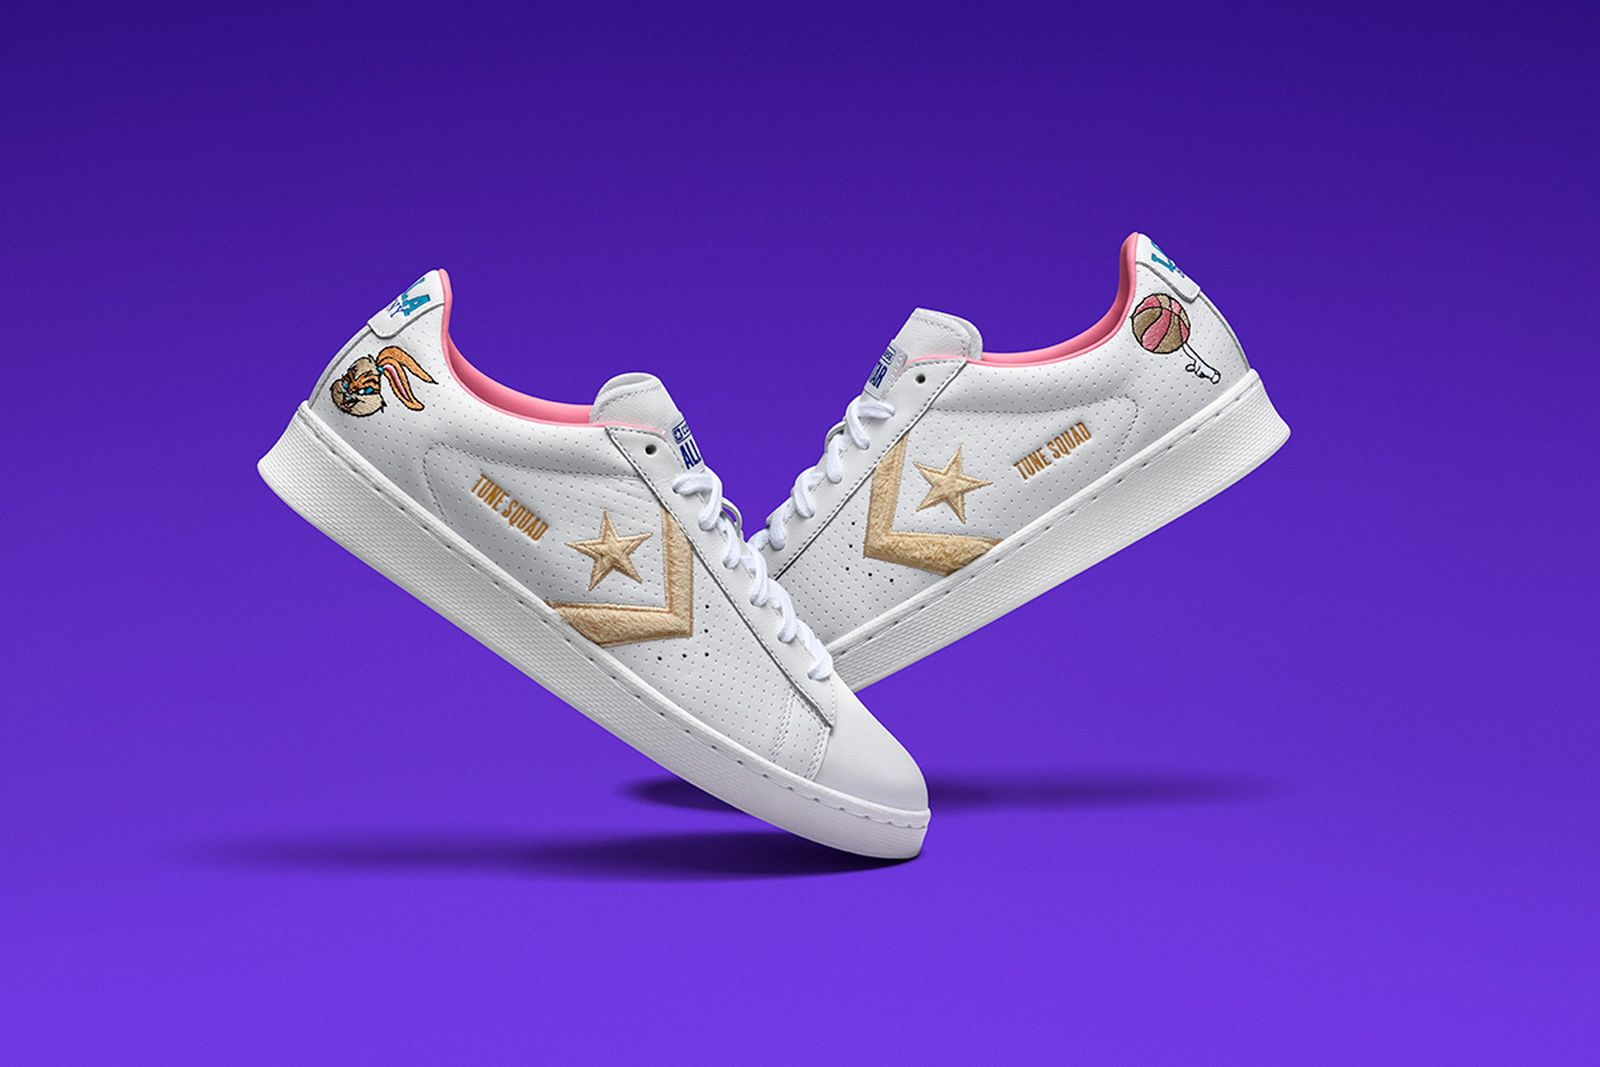 converse-space-jam-2-pack-release-date-price-04